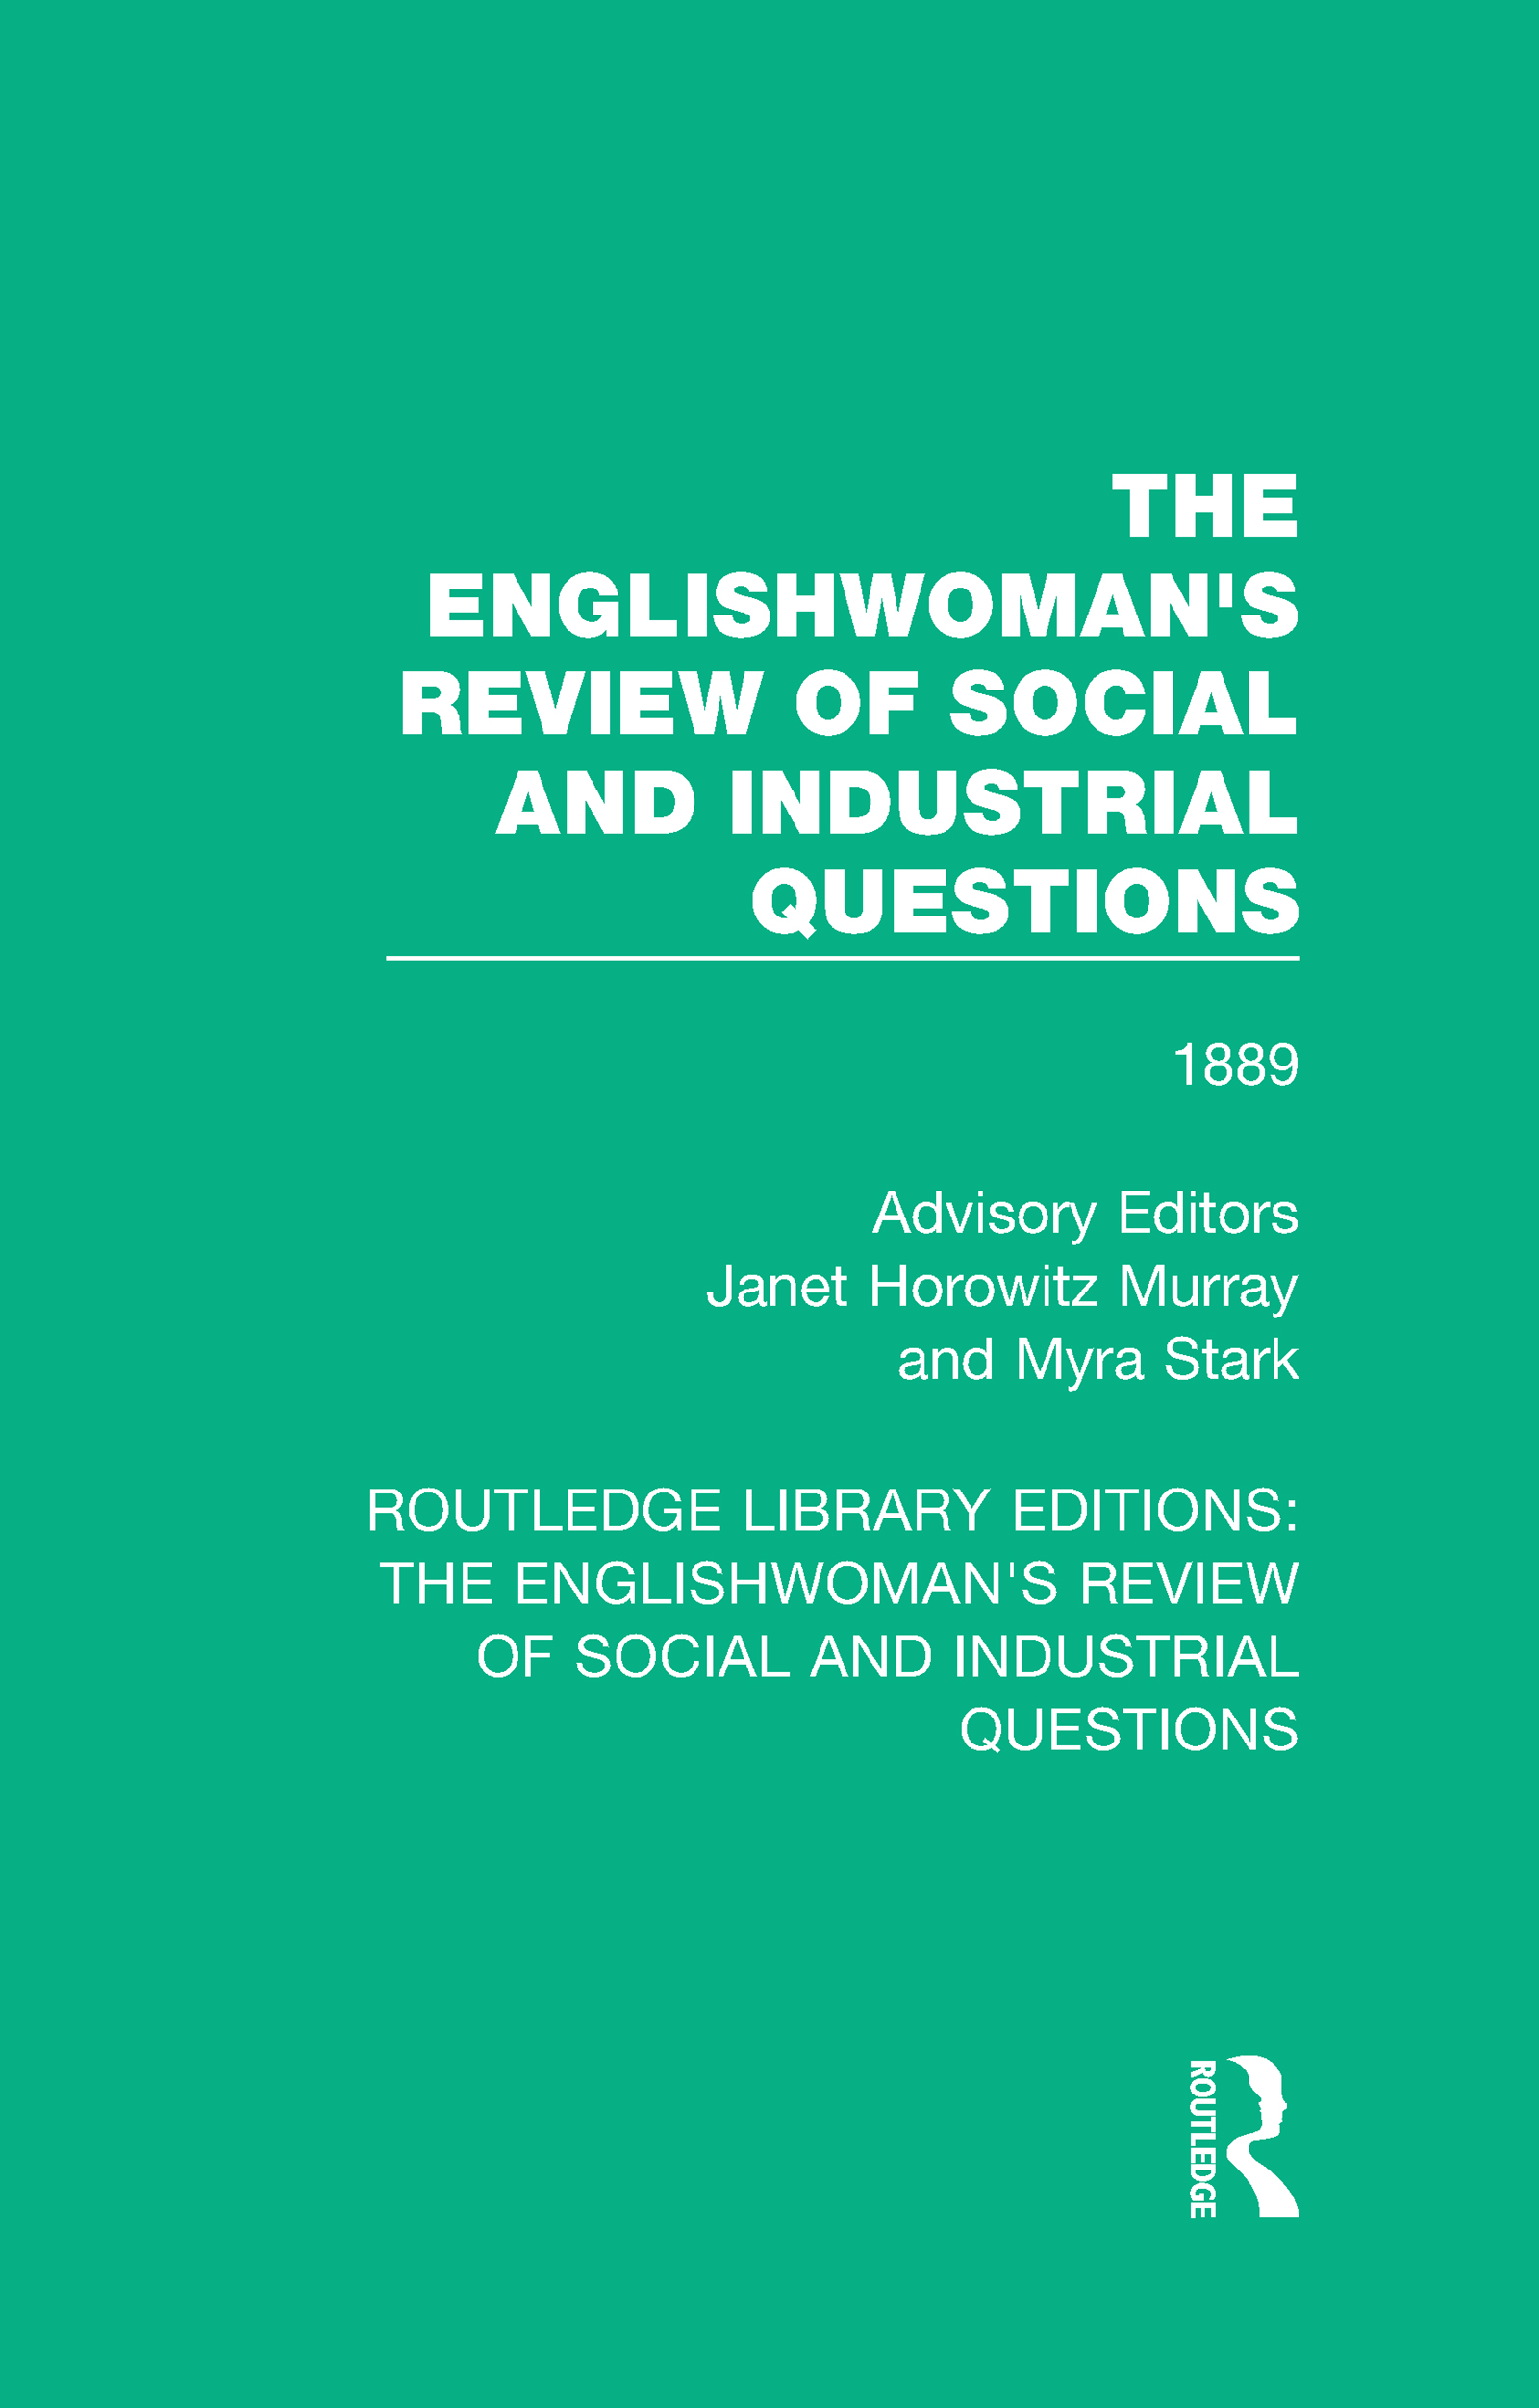 The Englishwoman's Review of Social and Industrial Questions: 1889 book cover